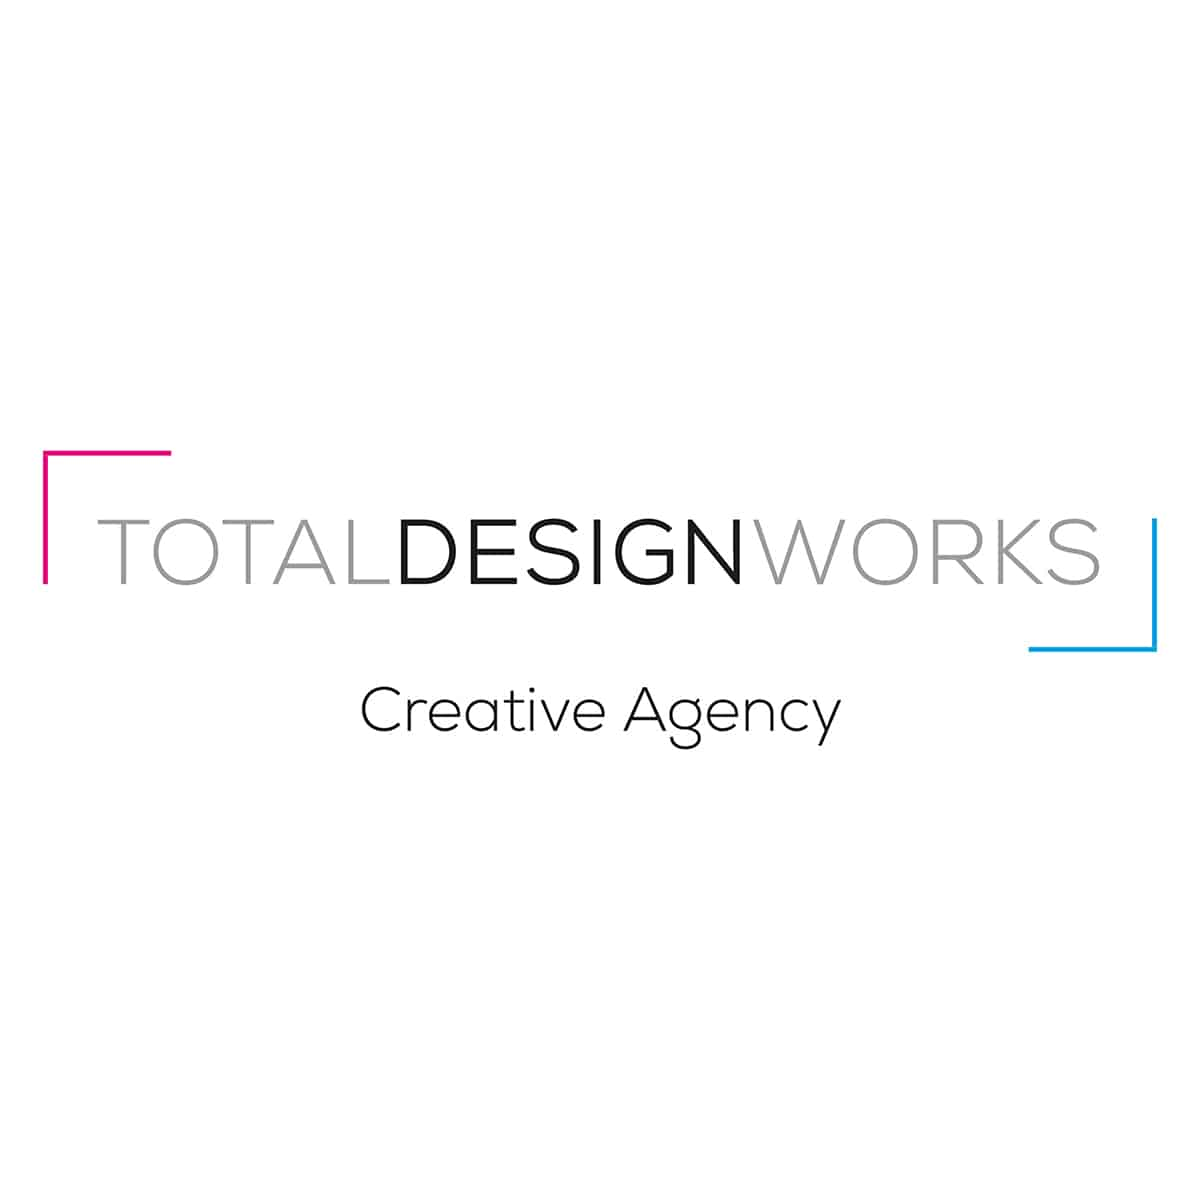 Total Design Works